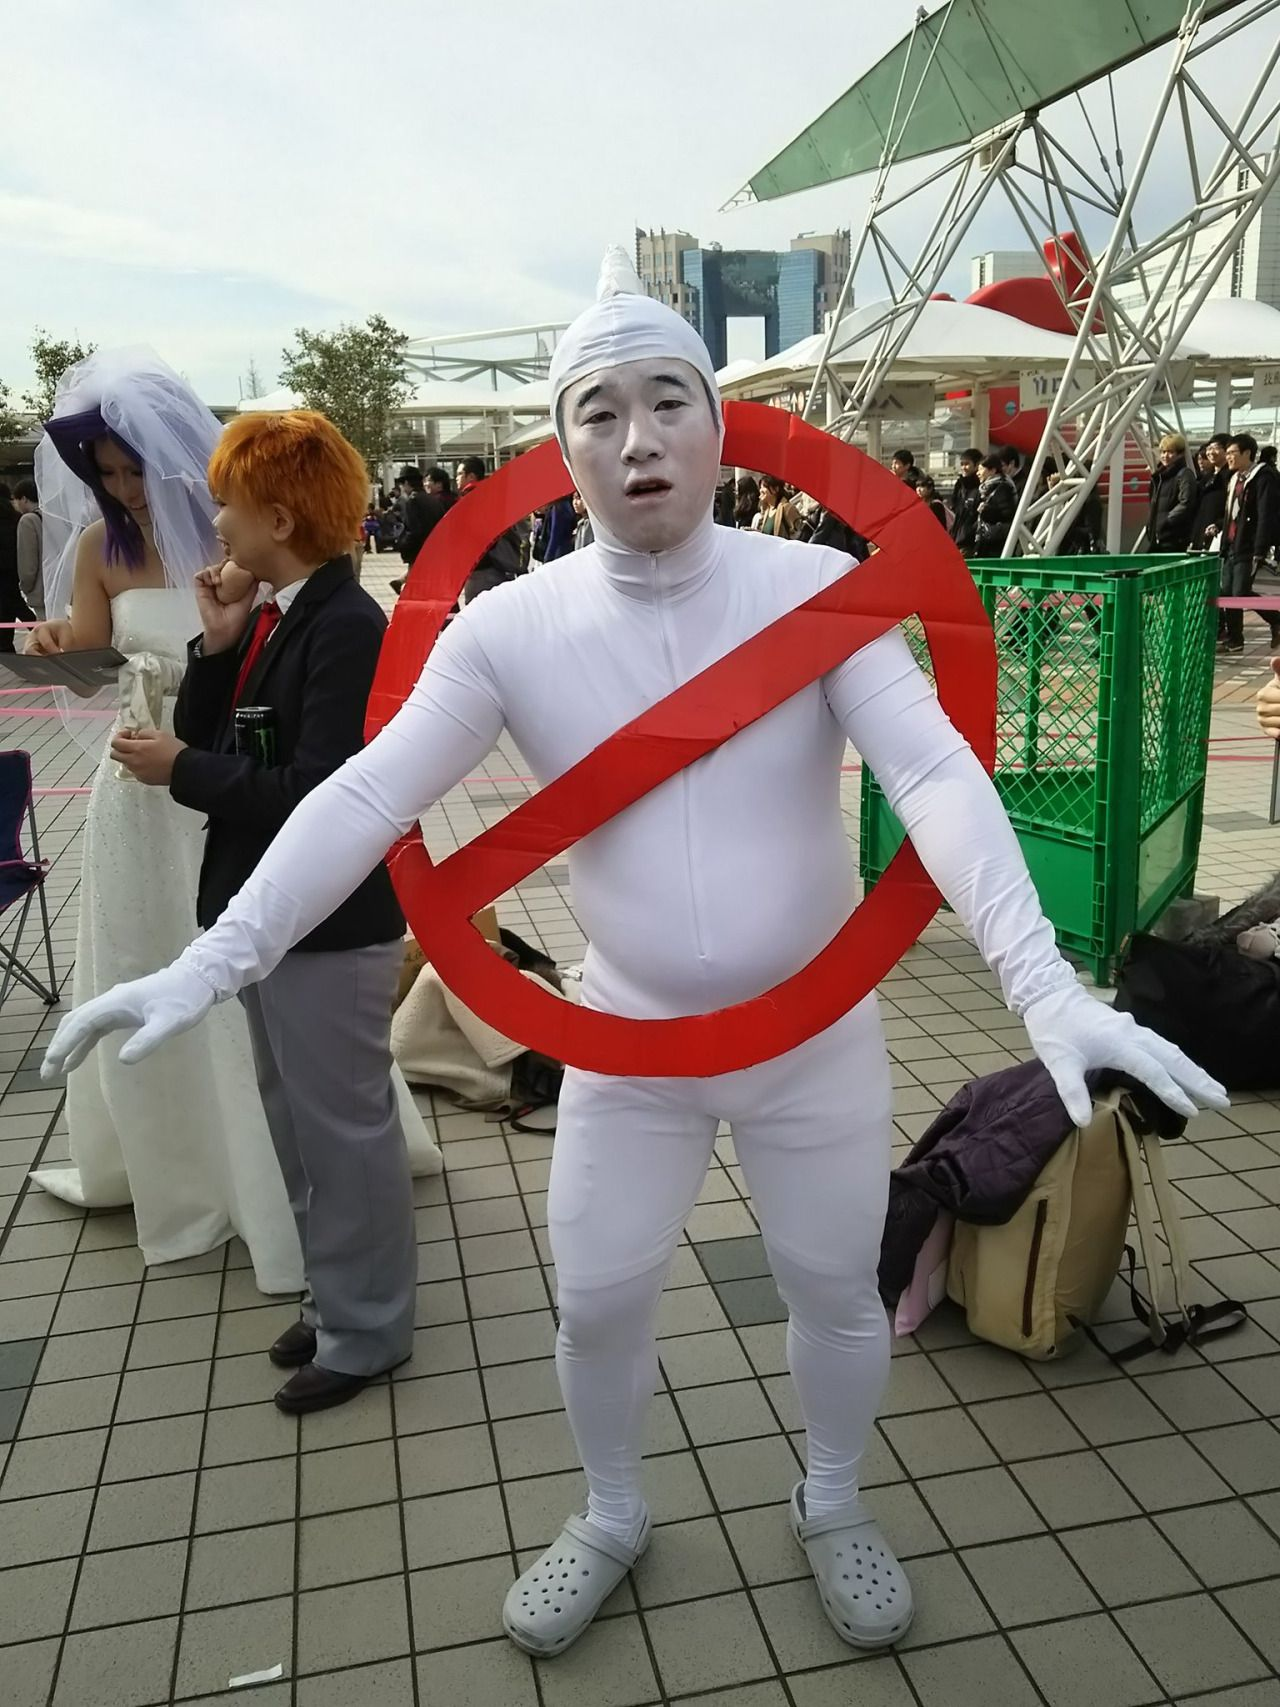 He Said He Was Going To Do A Ghostbusters Cosplay